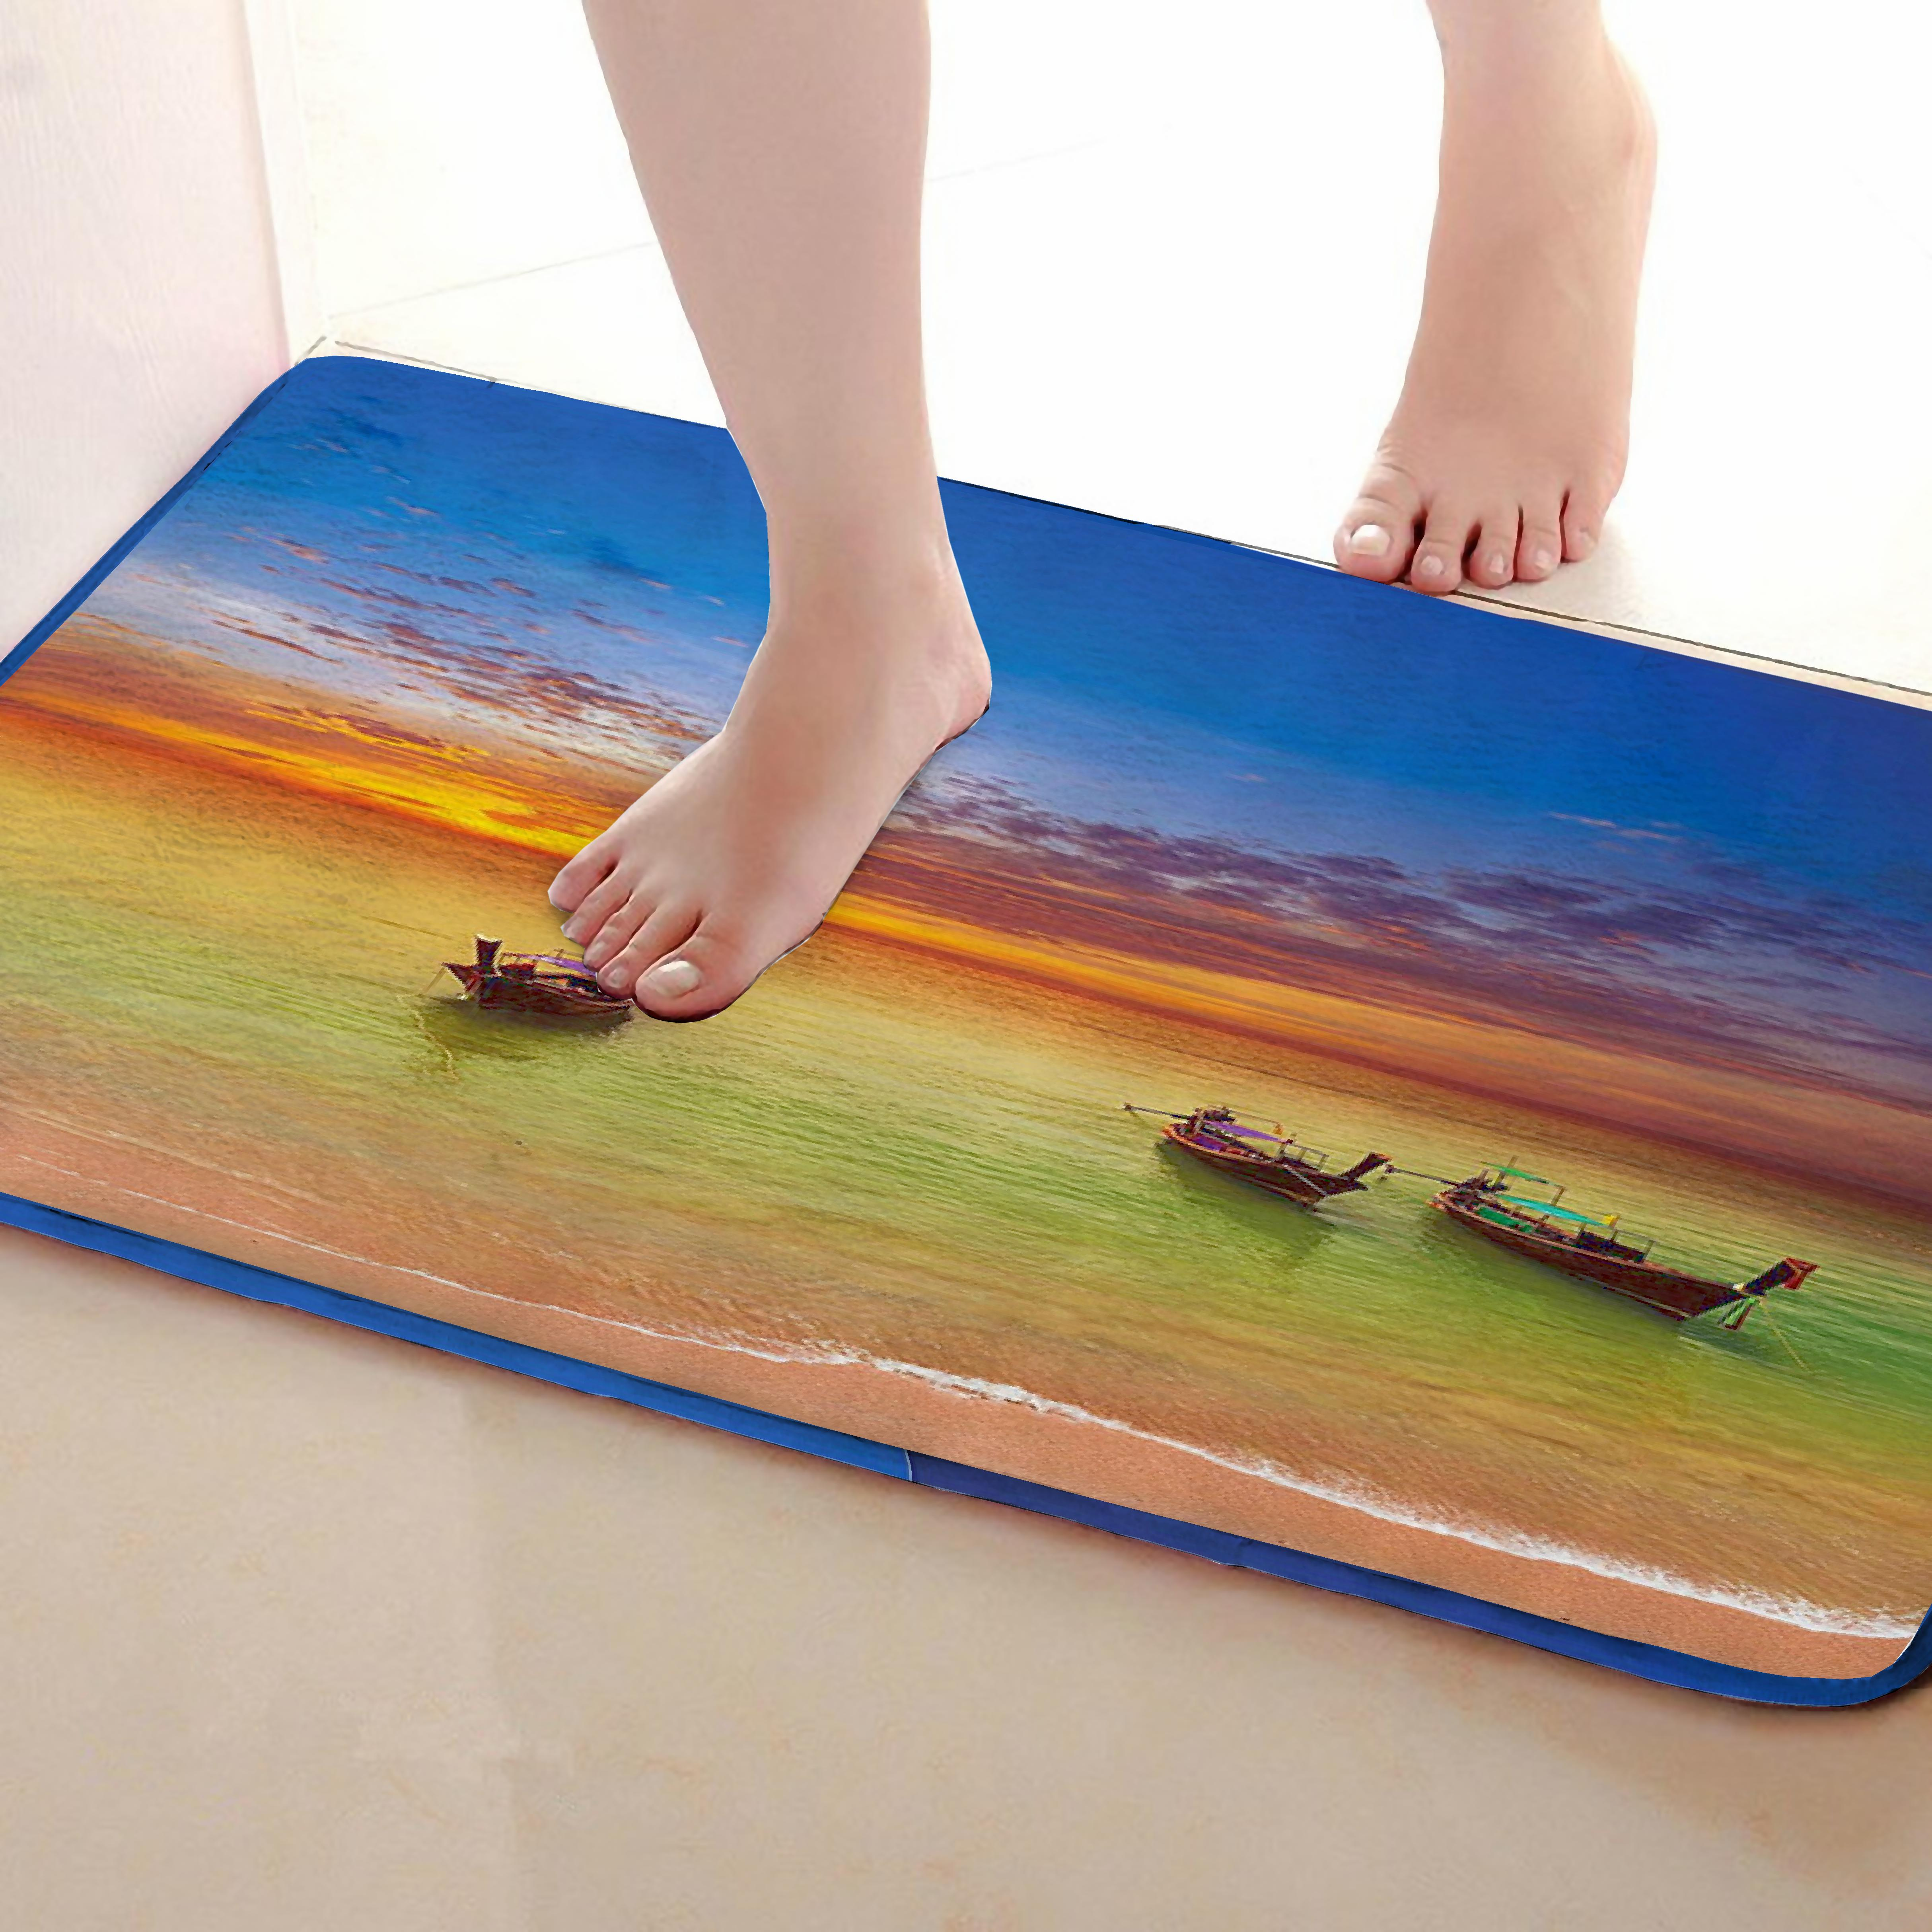 Boat Style Bathroom Mat,Funny Anti Skid Bath Mat,Shower Curtains Accessories,Matching Your Shower Curtain